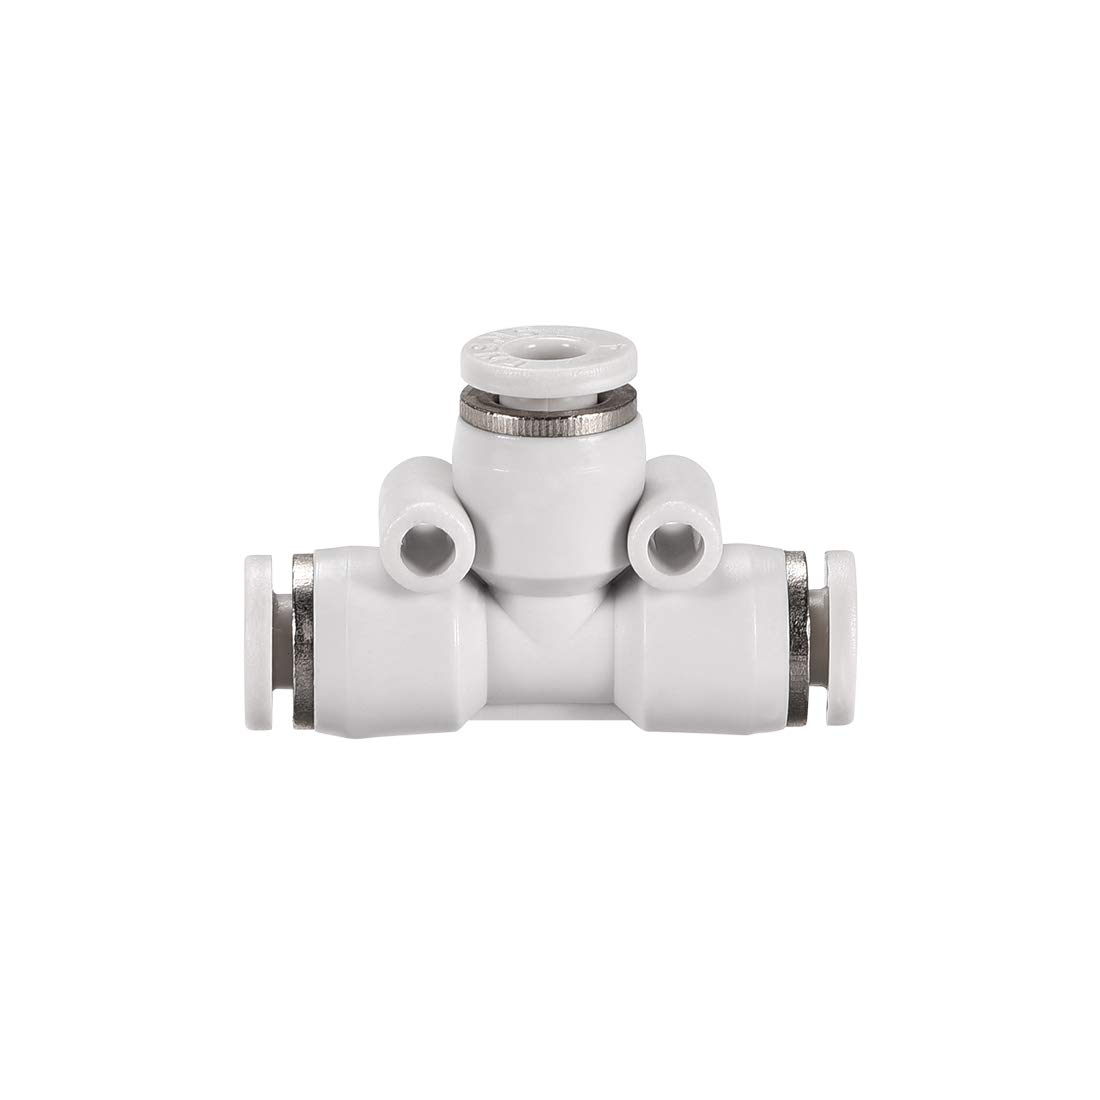 uxcell Plastic Tee Push To Connect Tube Fittings 6mm-4mm OD Push Lock White 3pcs